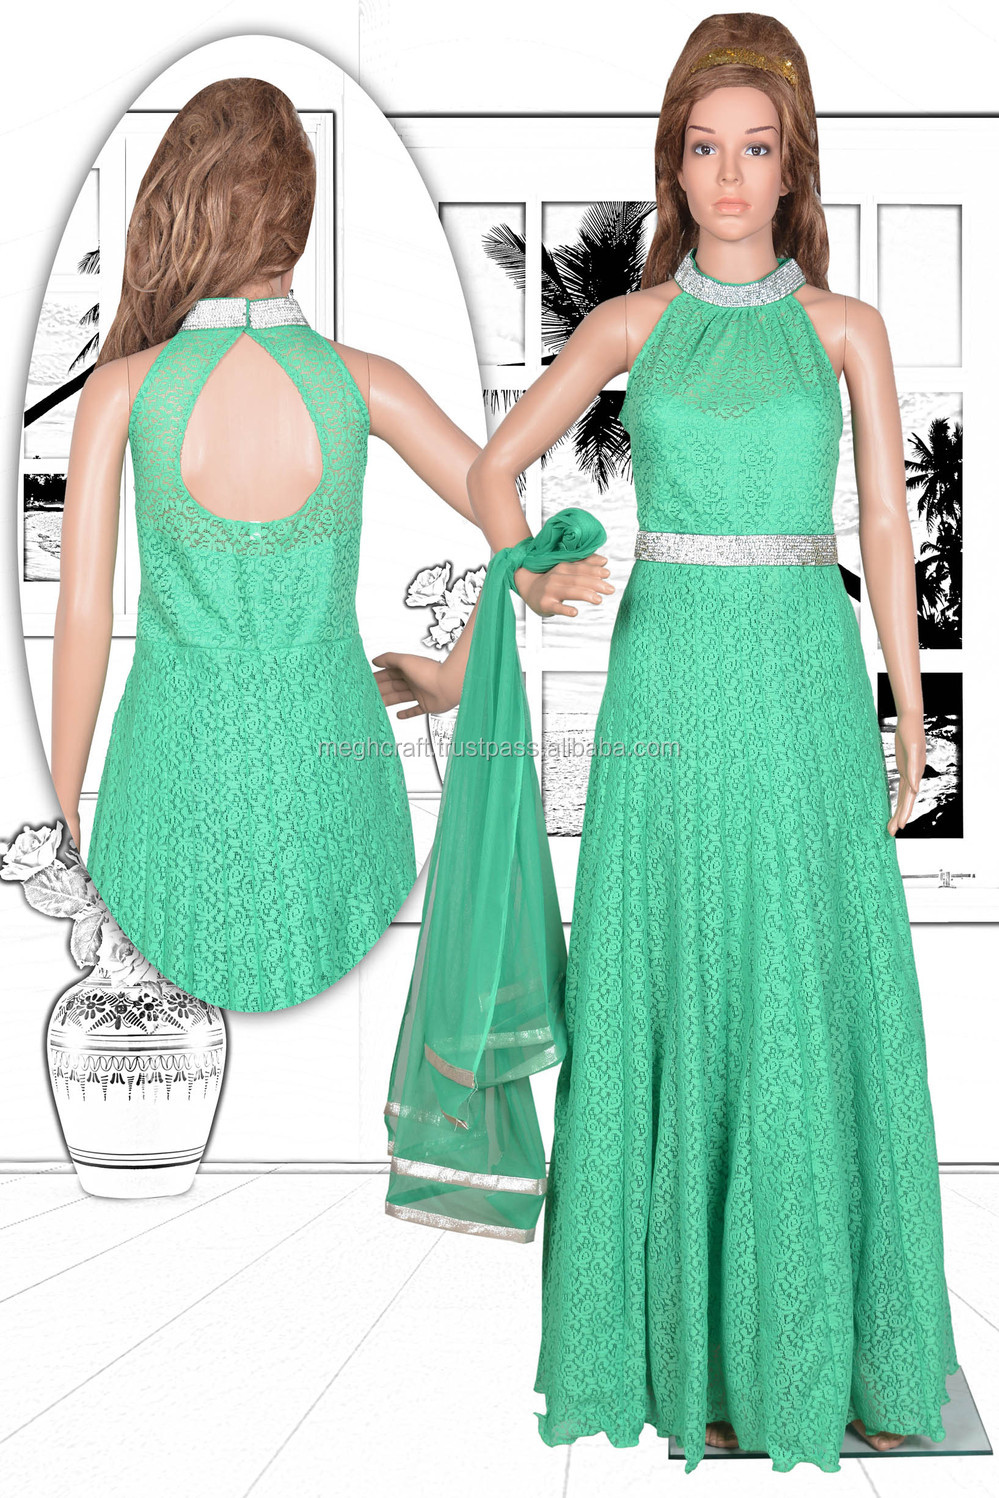 dd03f731dd59 PARTY WEAR FLOOR TOUCH LONG GOWN-WHOLESALE CHIFFON AND NET GOWN-EVENING  WEAR DRESS